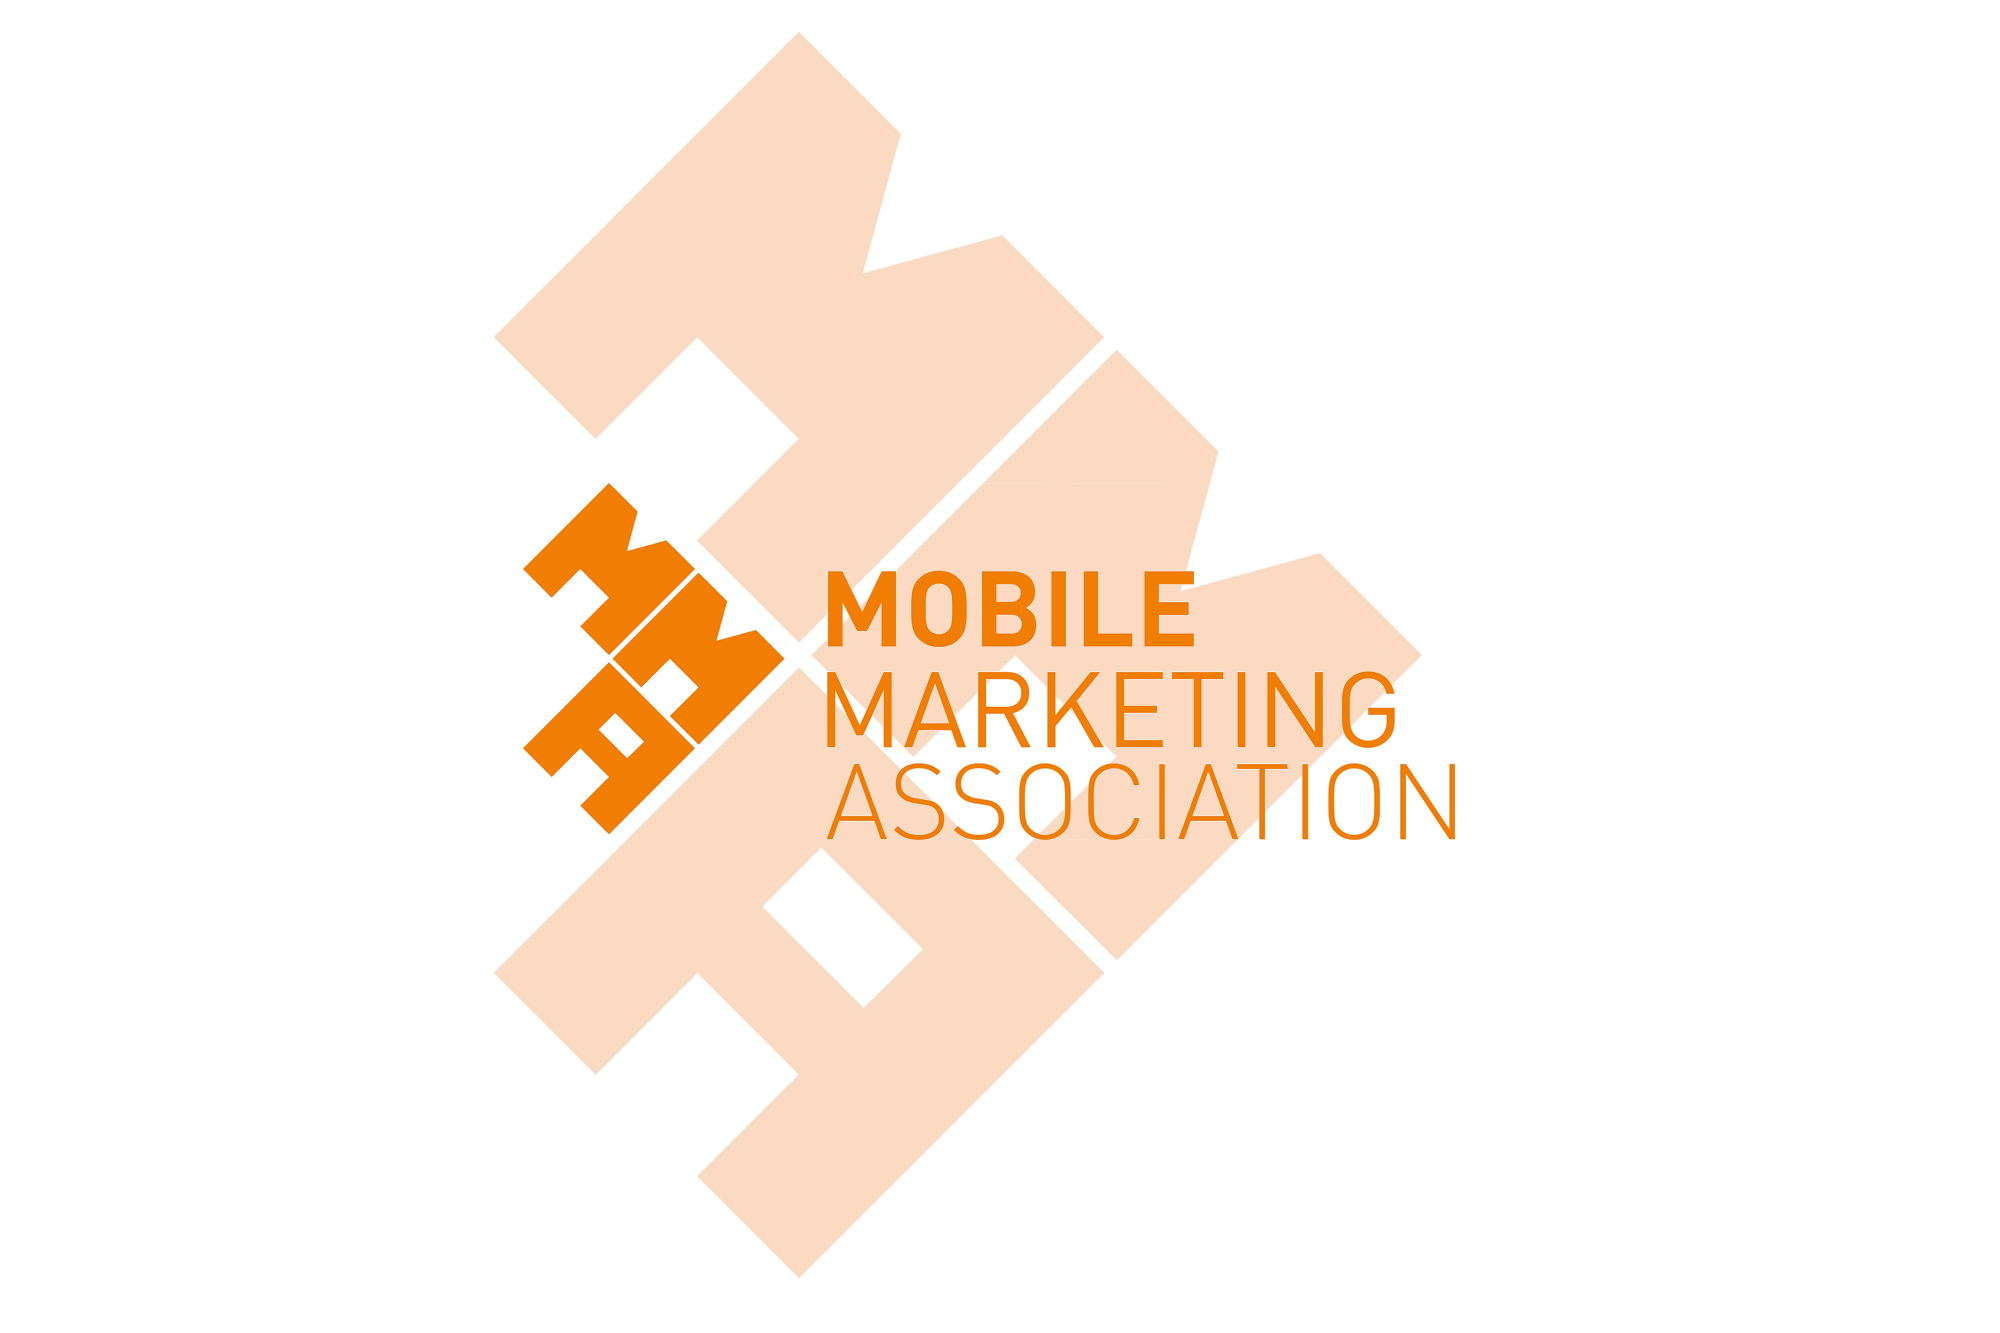 MobiWeb joins Mobile Marketing Association